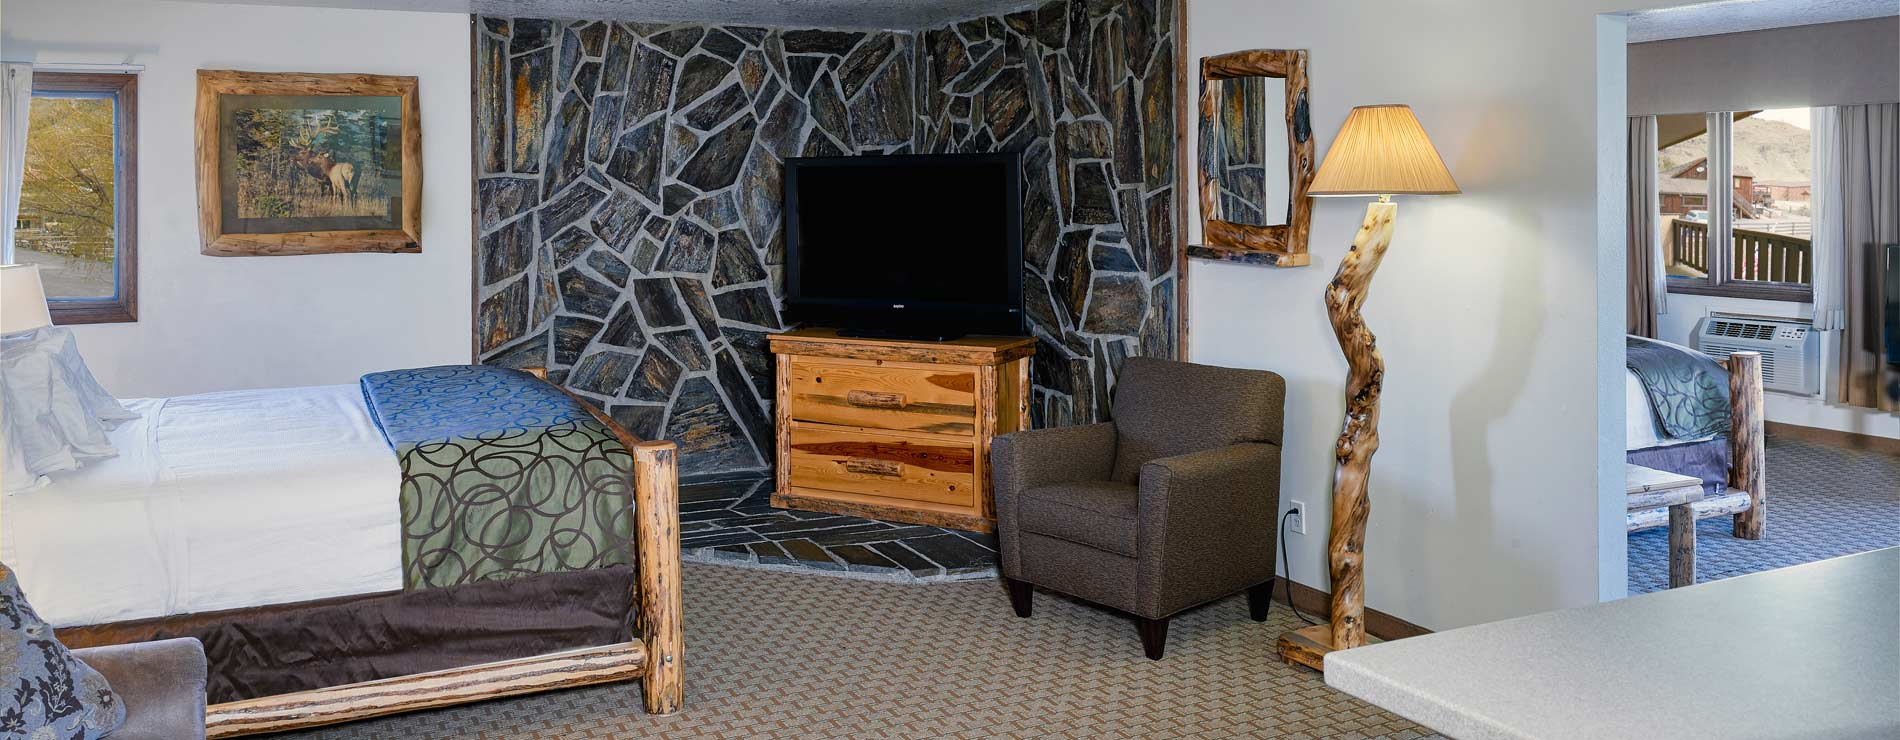 The Ridgeline Hotel at Yellowstone guest room interior